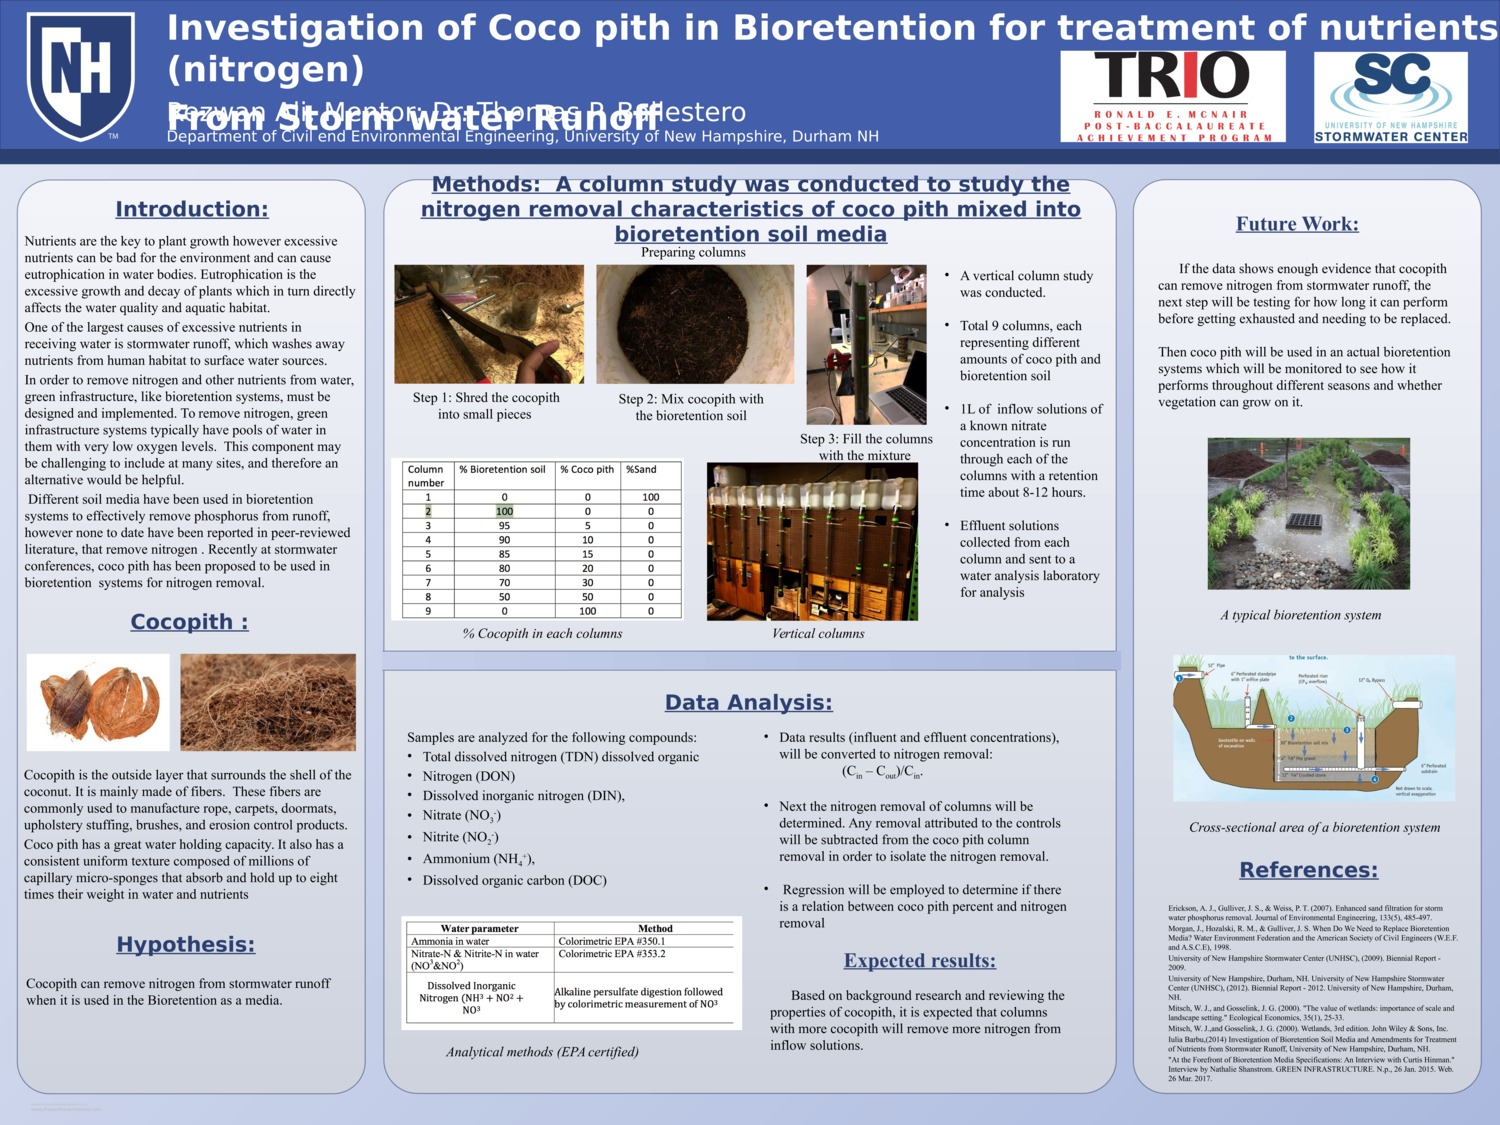 Investigation Of Coco Pith In Bioretention For Treatment Of Nutrients (Nitrogen)  From Storm Water Runoff by ra1o25